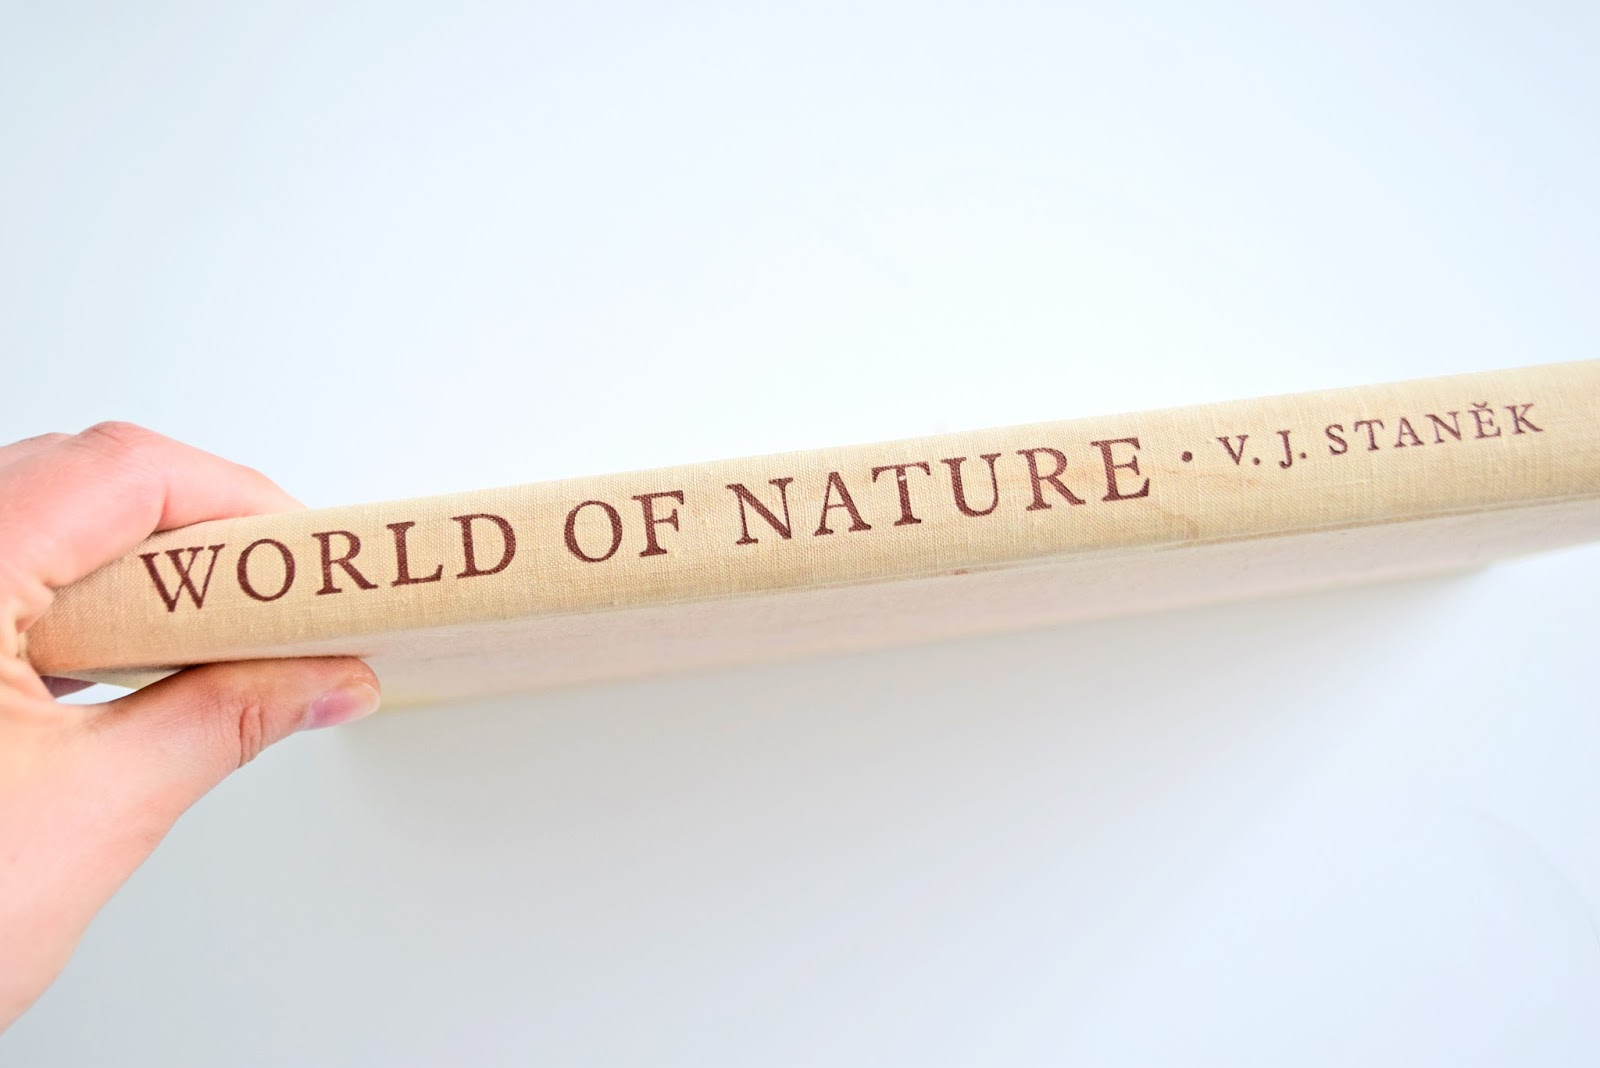 world of nature book